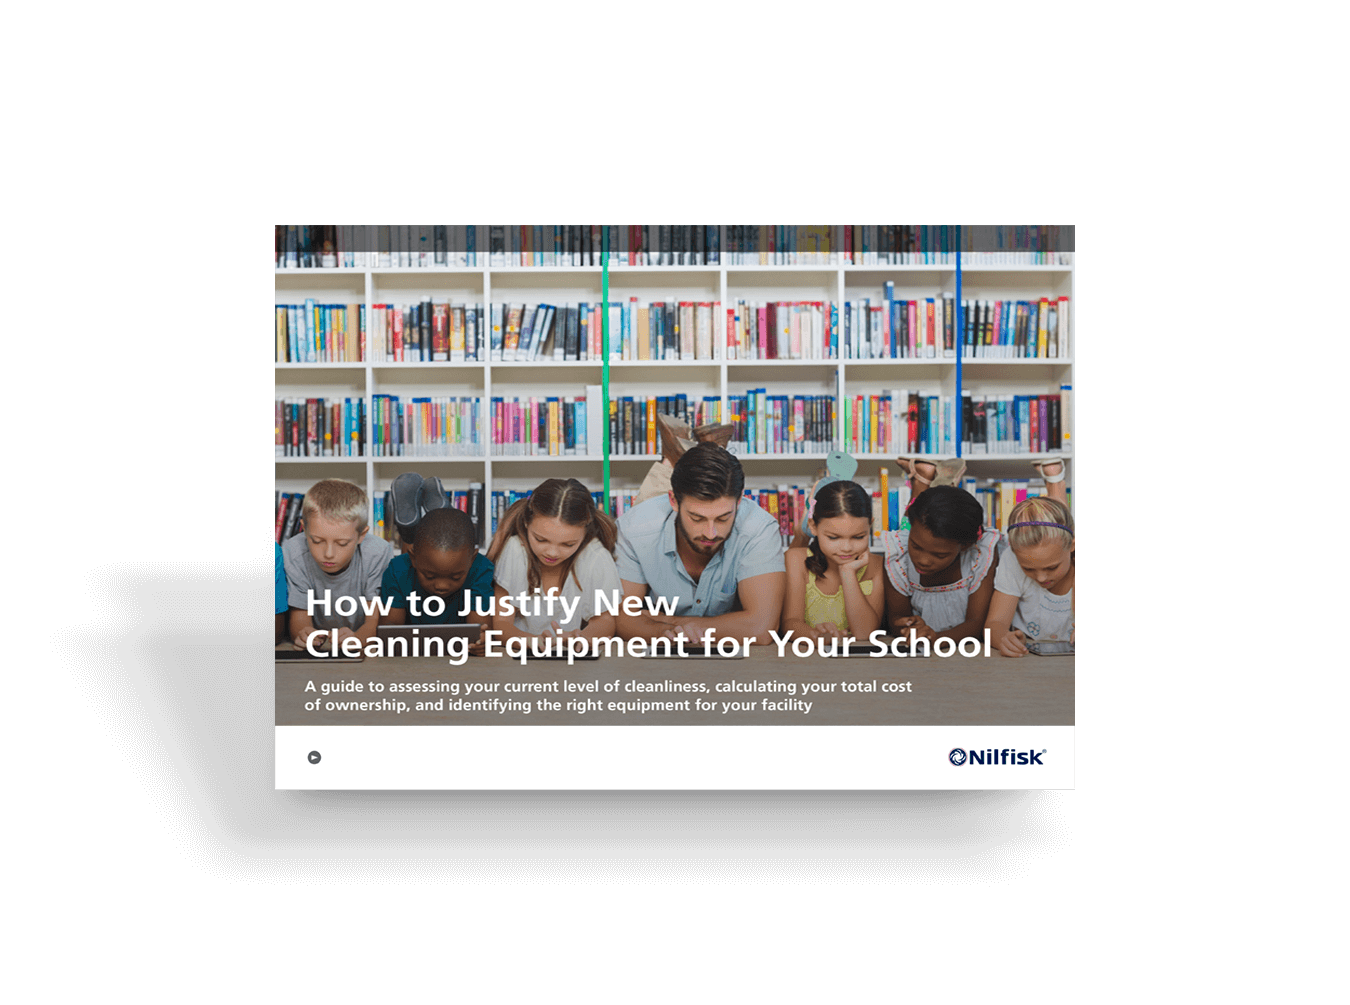 How To Justify New Cleaning Equipment For Your School Ebook 8 5 2019 1